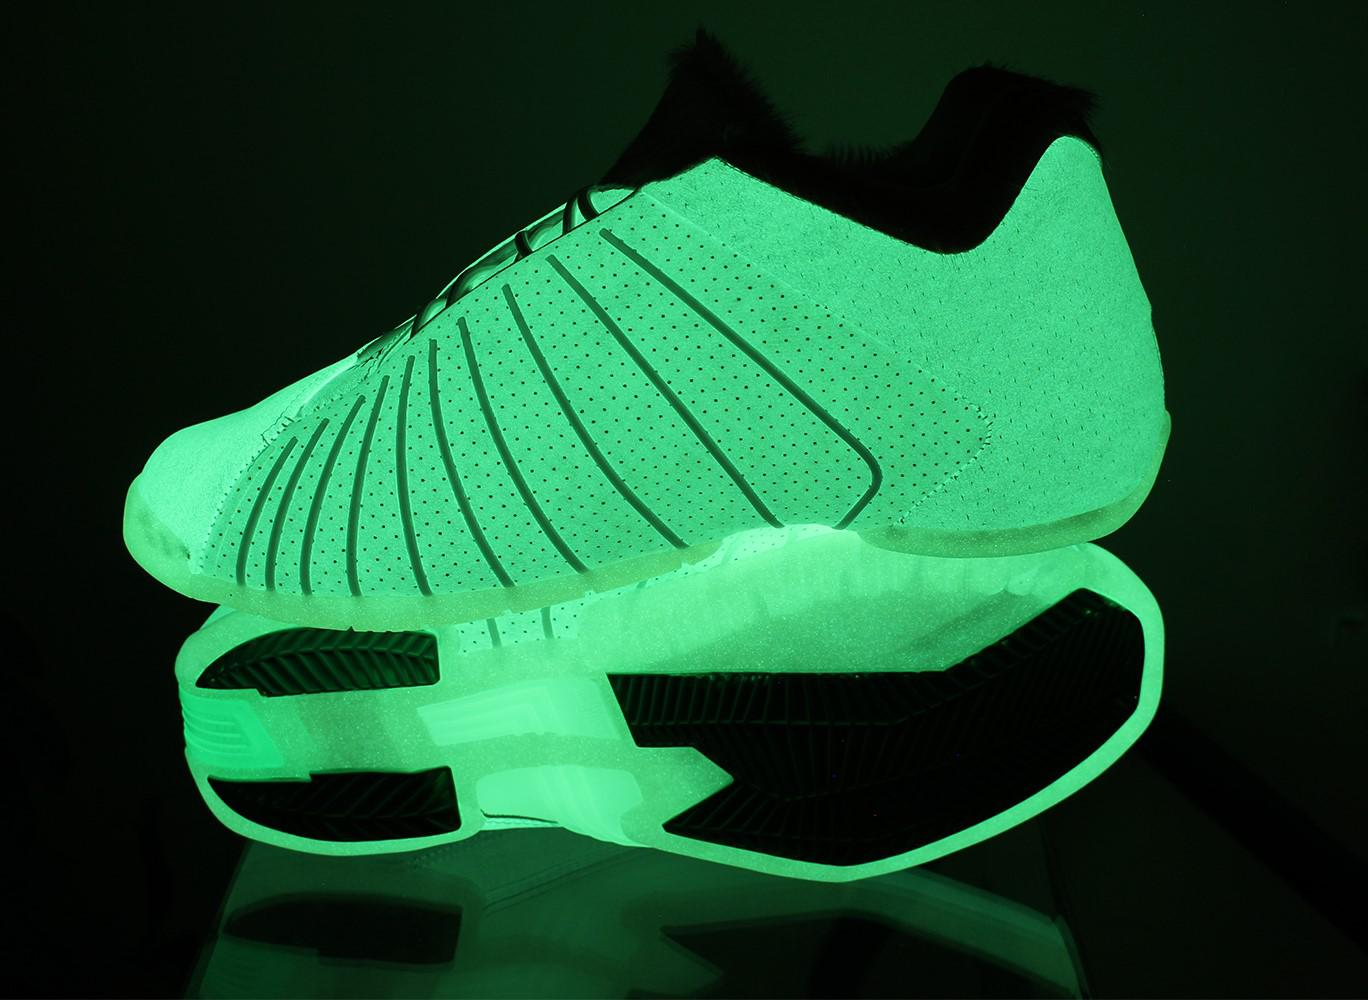 Lyst - adidas Tmac 3 Basketball Glow In The Dark Shoes for Men da2a8a2f9